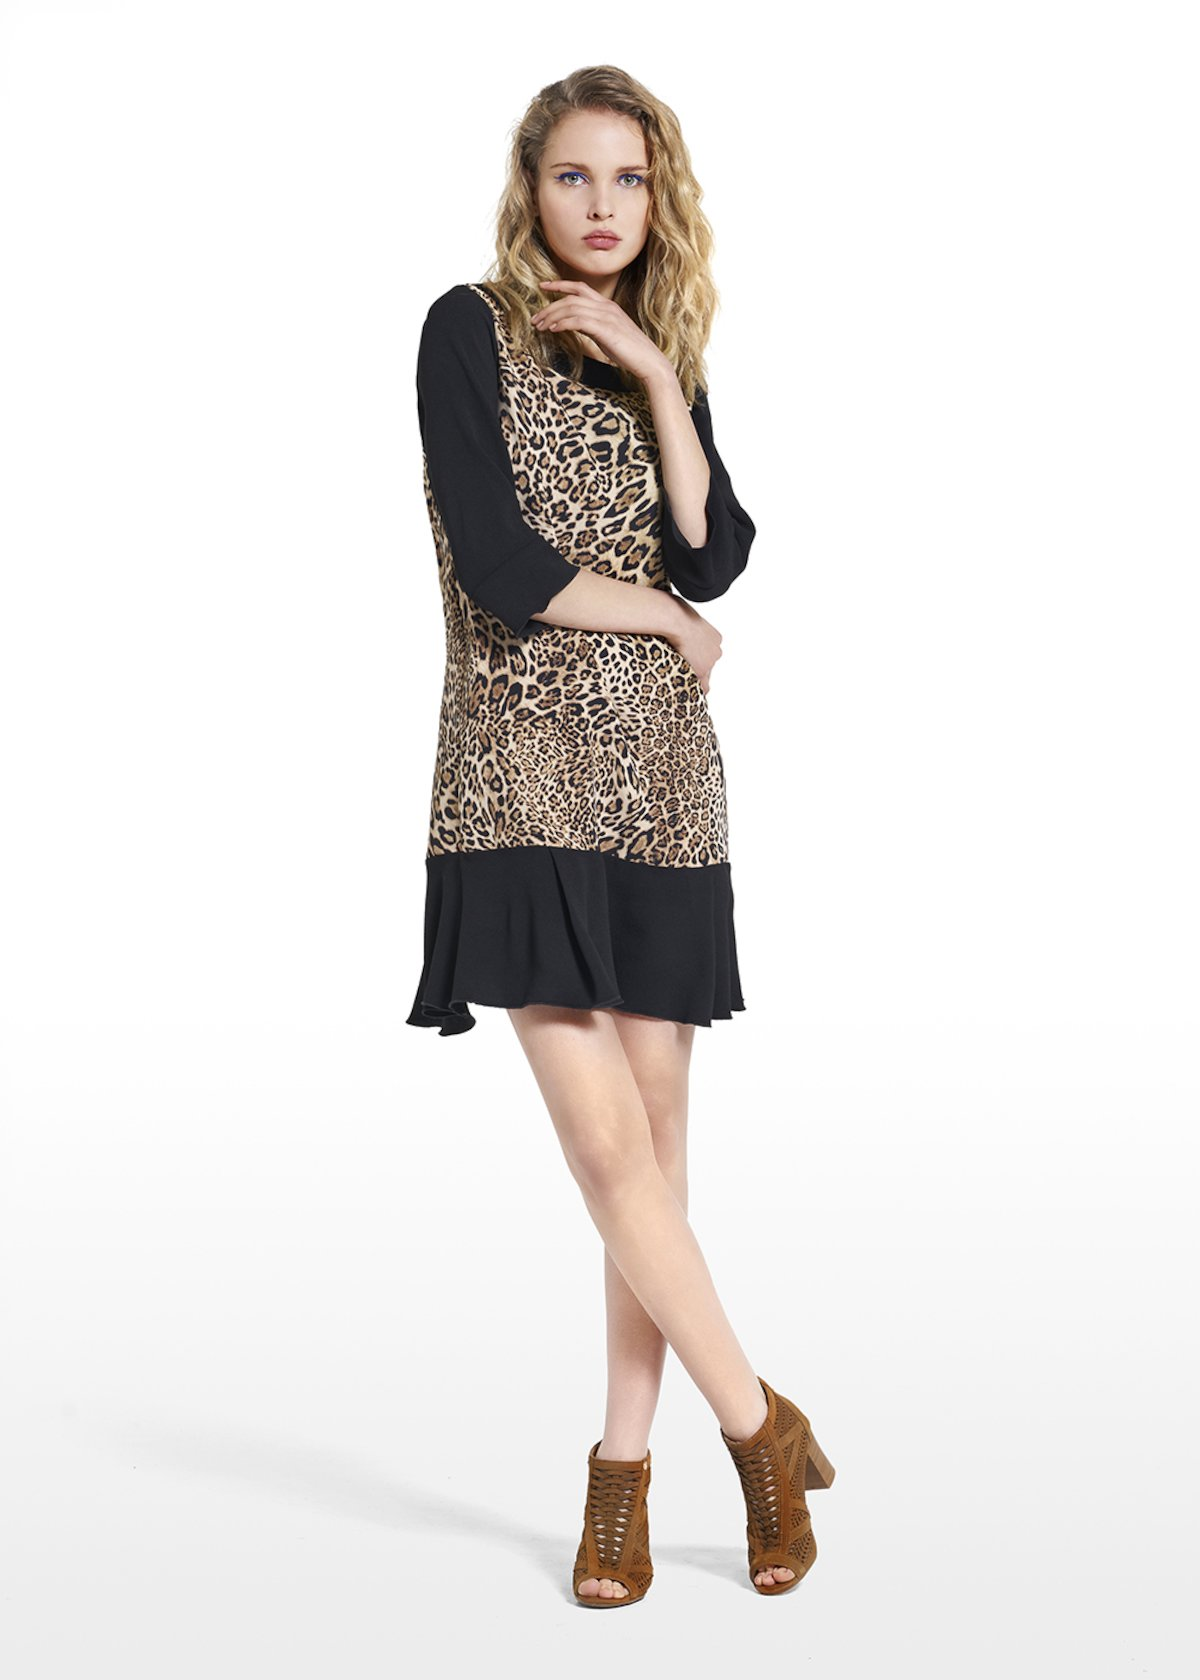 Patterned animalier dress Amour in pepper fabric - Beige / Black Animalier - Woman